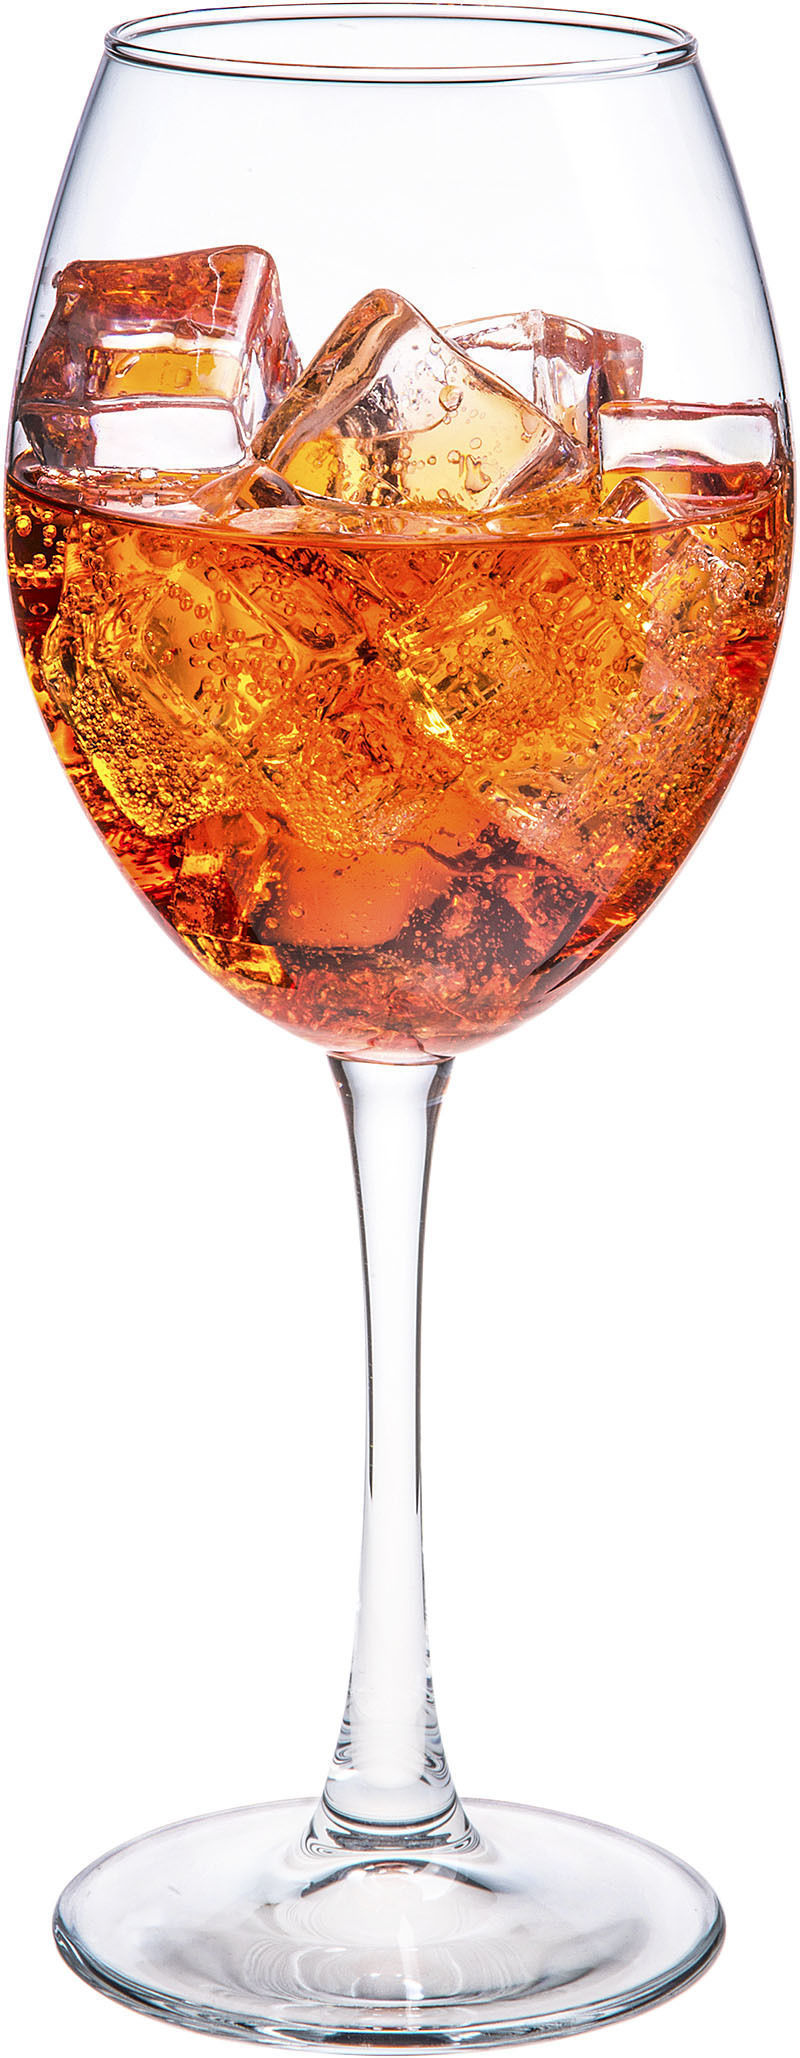 How to Make the Aperol Spritz